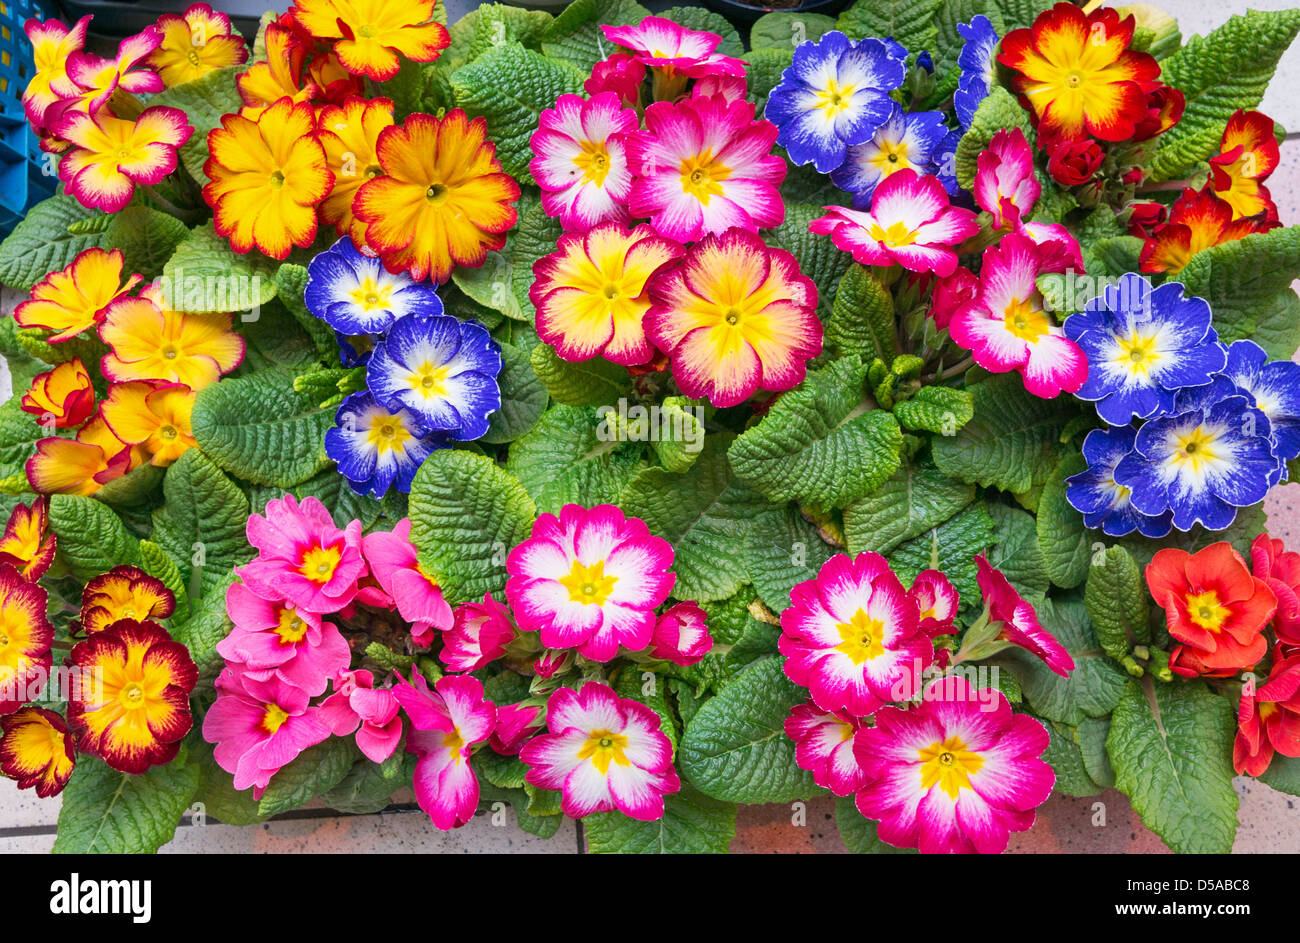 Polyanthus spring flowers colourful stock photos polyanthus spring display of spring flowers for sale within the grainger indoor market newcastle north east england uk mightylinksfo